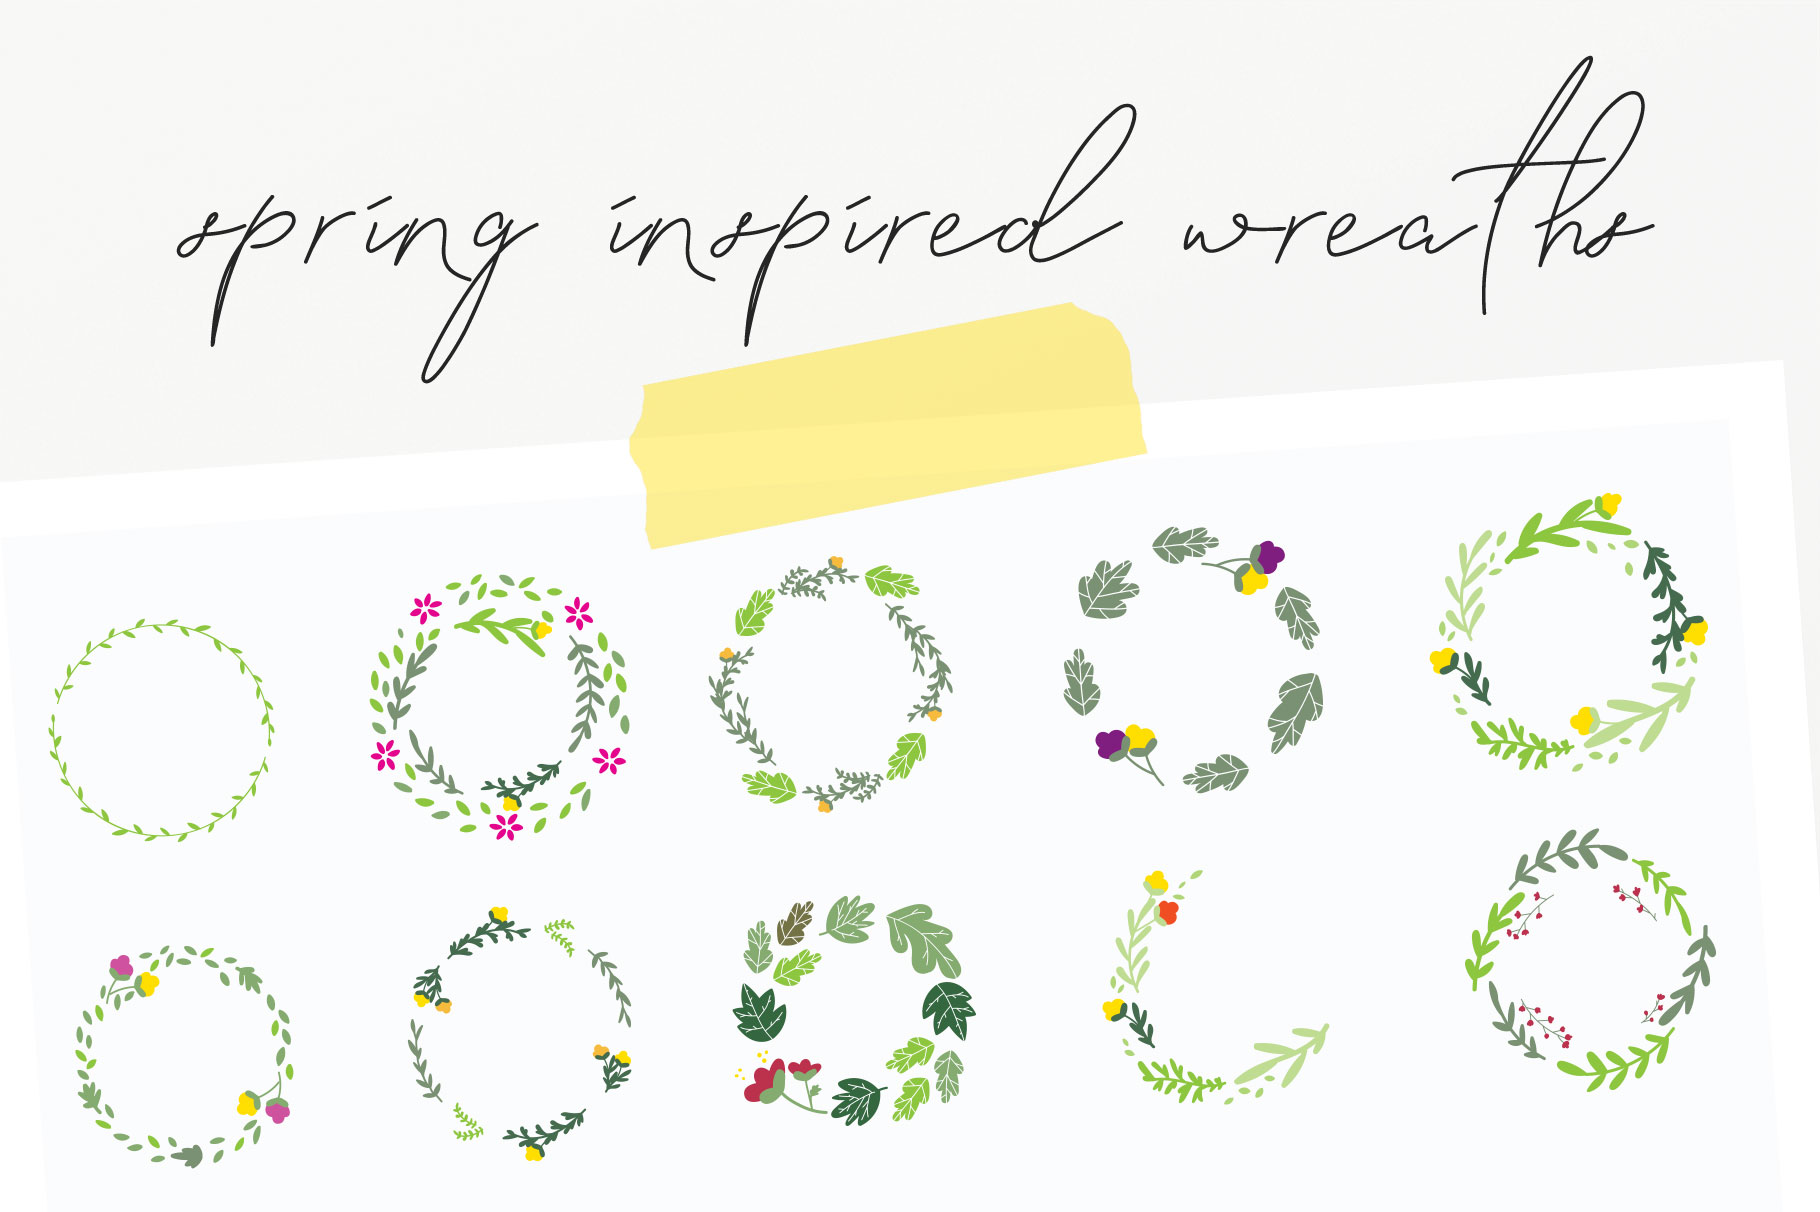 20 Spring Wreaths Vector Pack example image 4